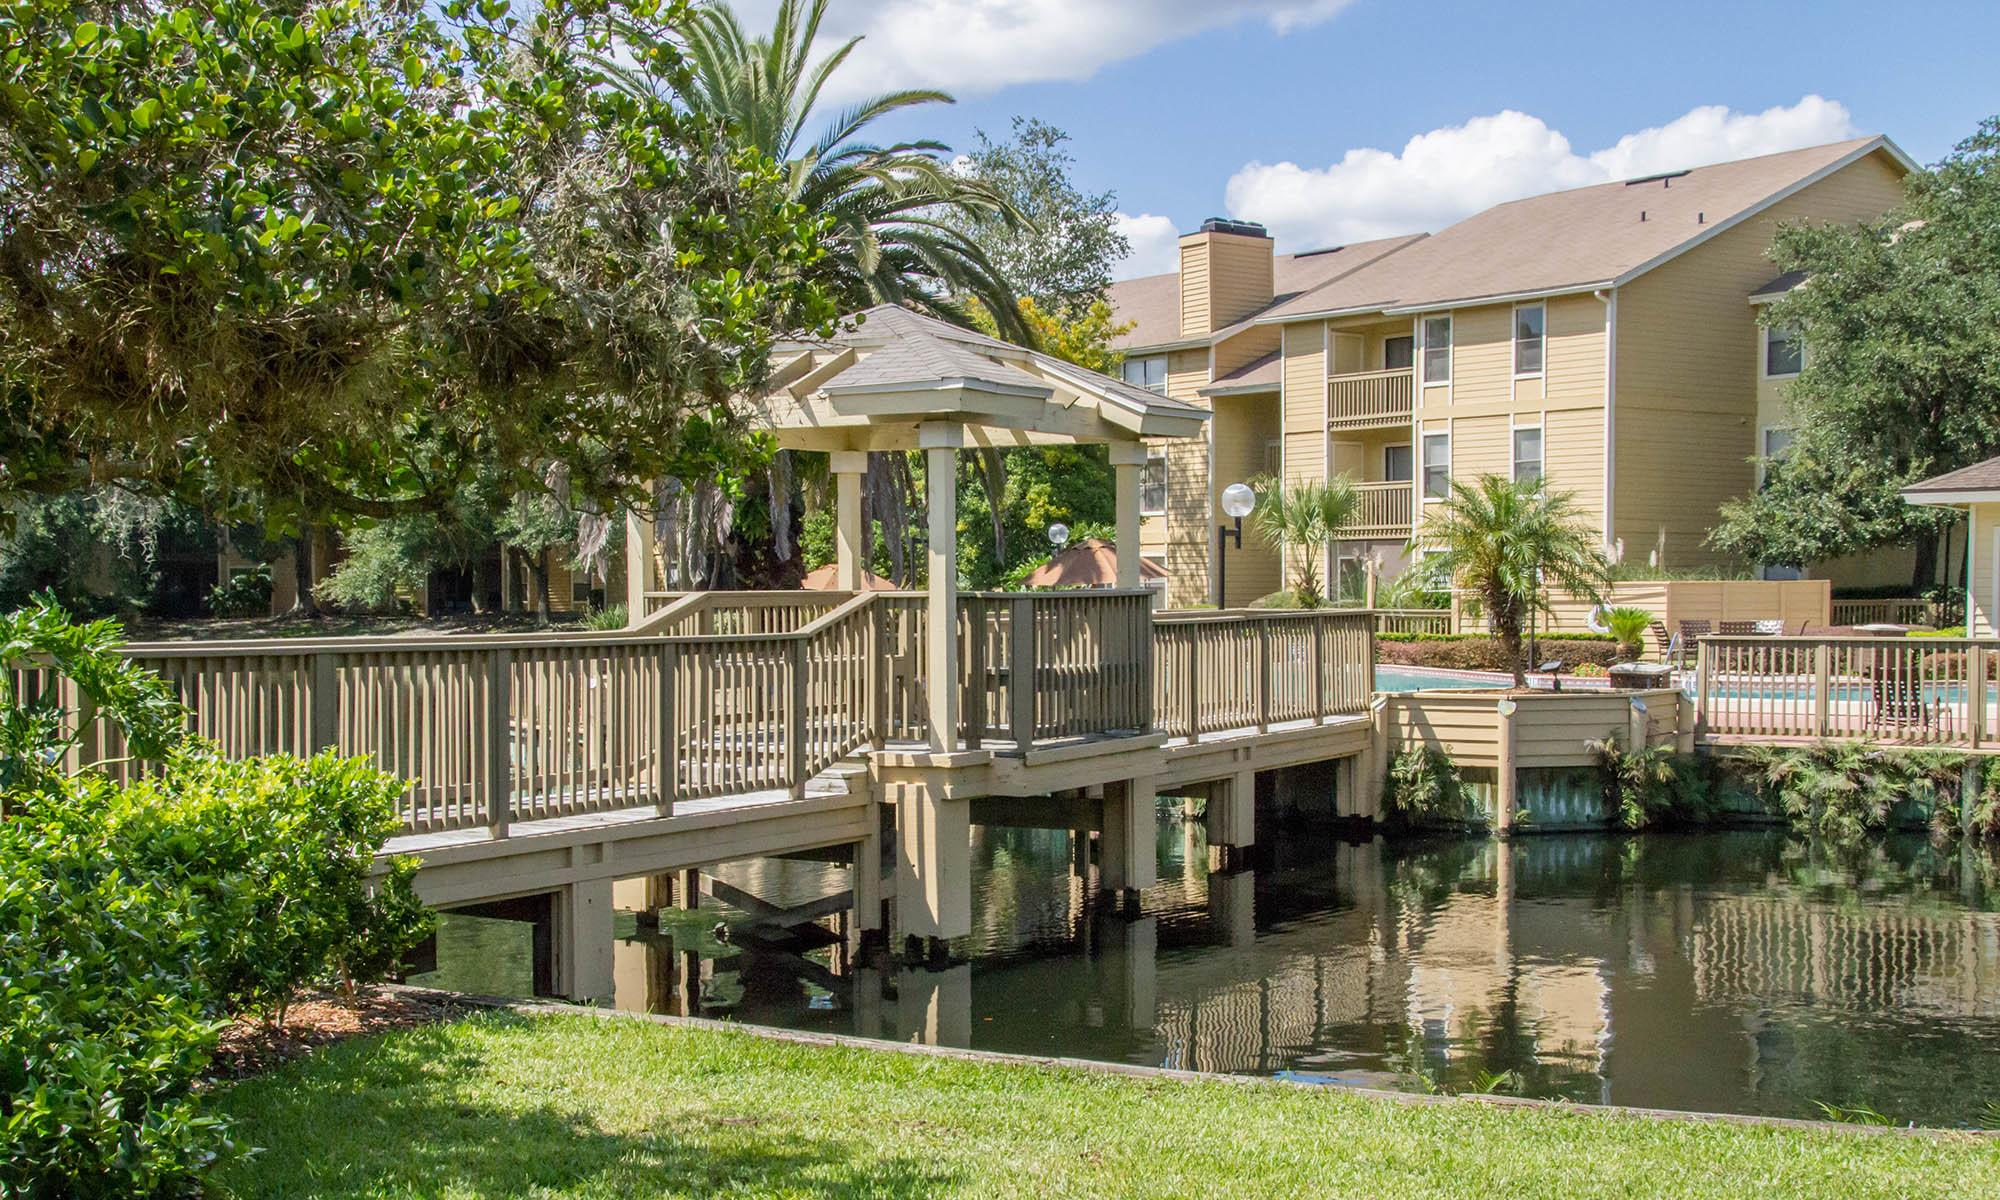 Pet-friendly apartments in Orange Park